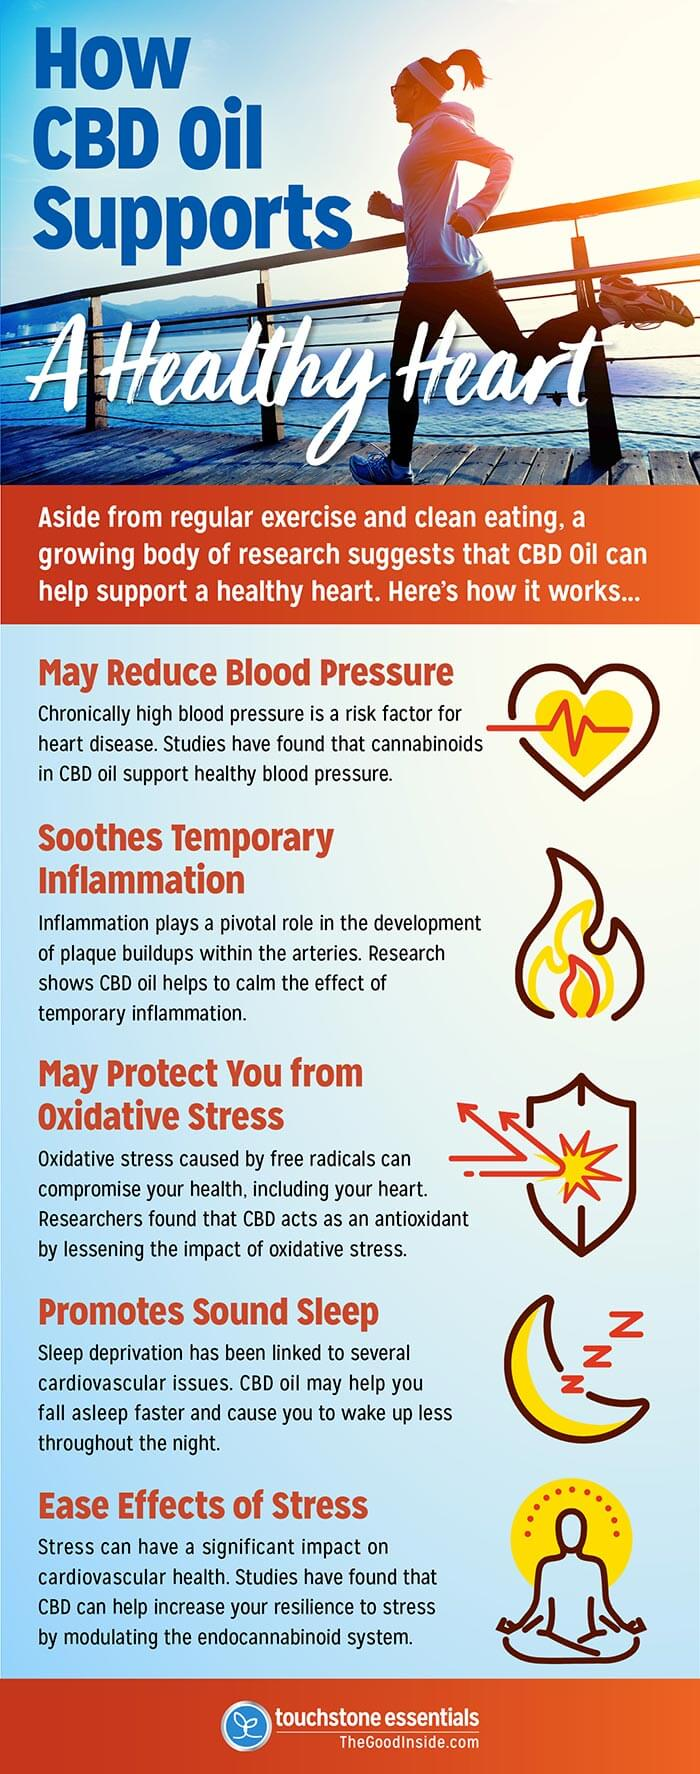 How CBD Oil Supports a Healthy Heart Infographic